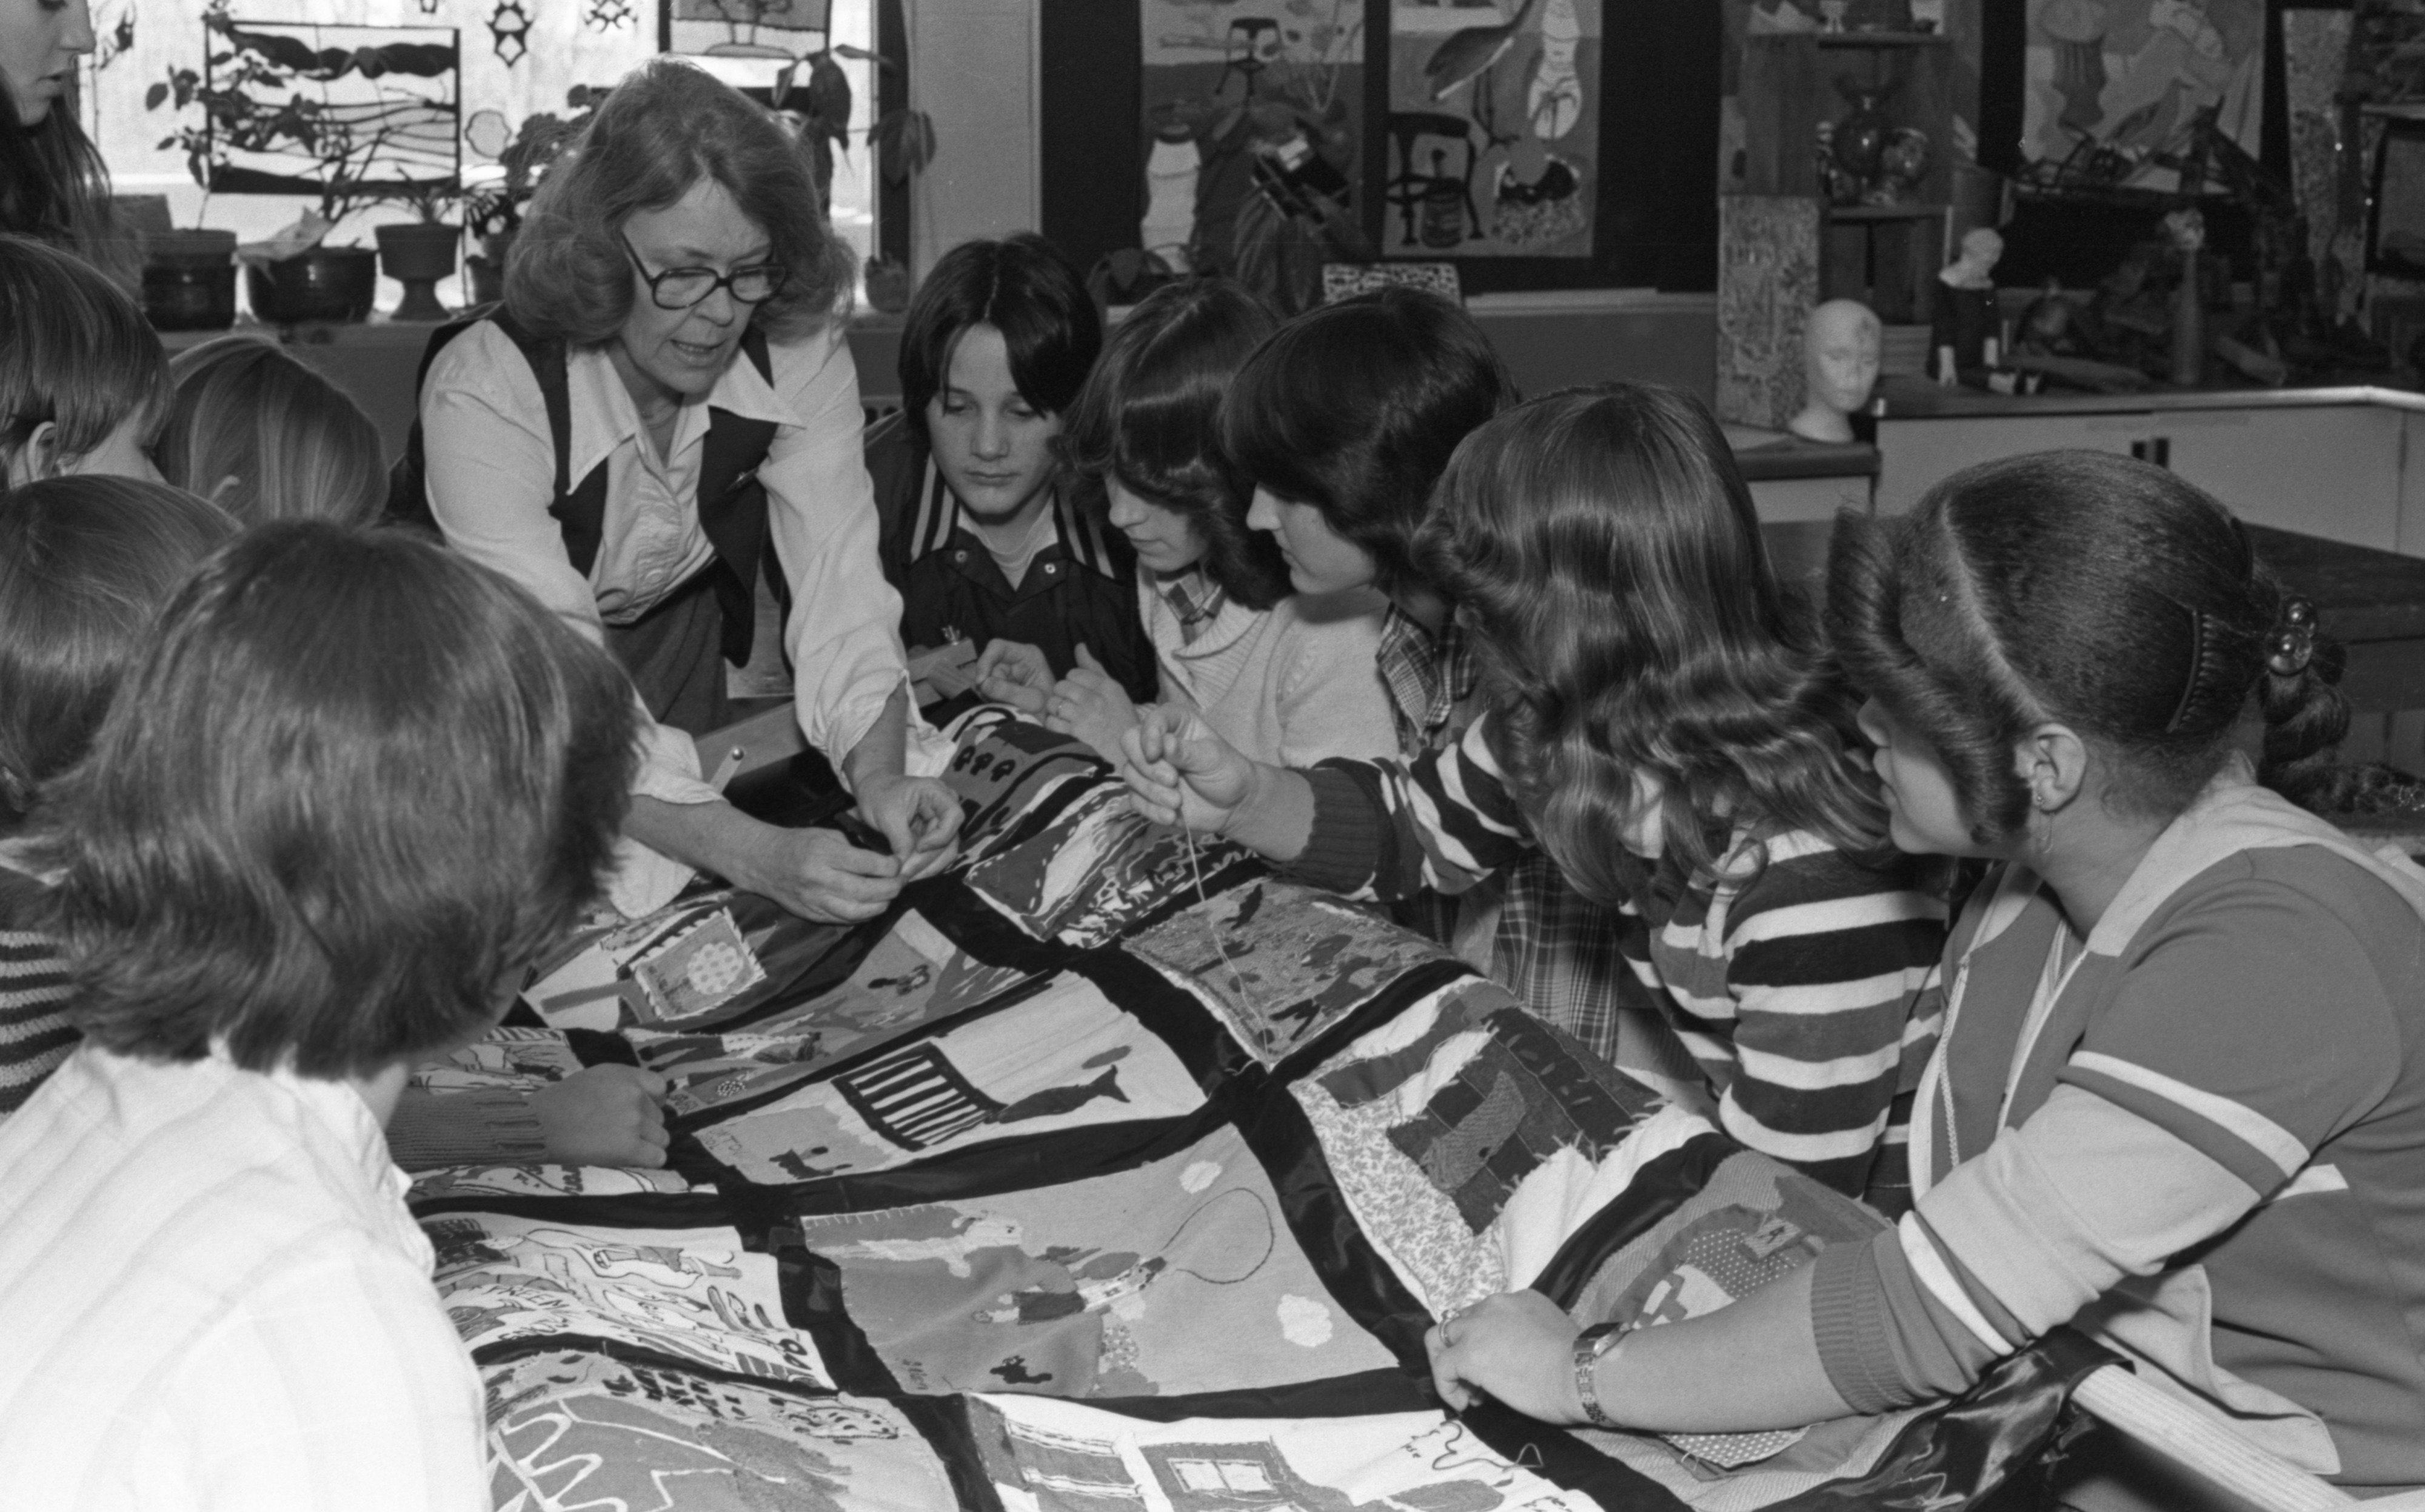 Clague School Students Work On An Ann Arbor Quilt With Their Art Teacher, February 1980 image